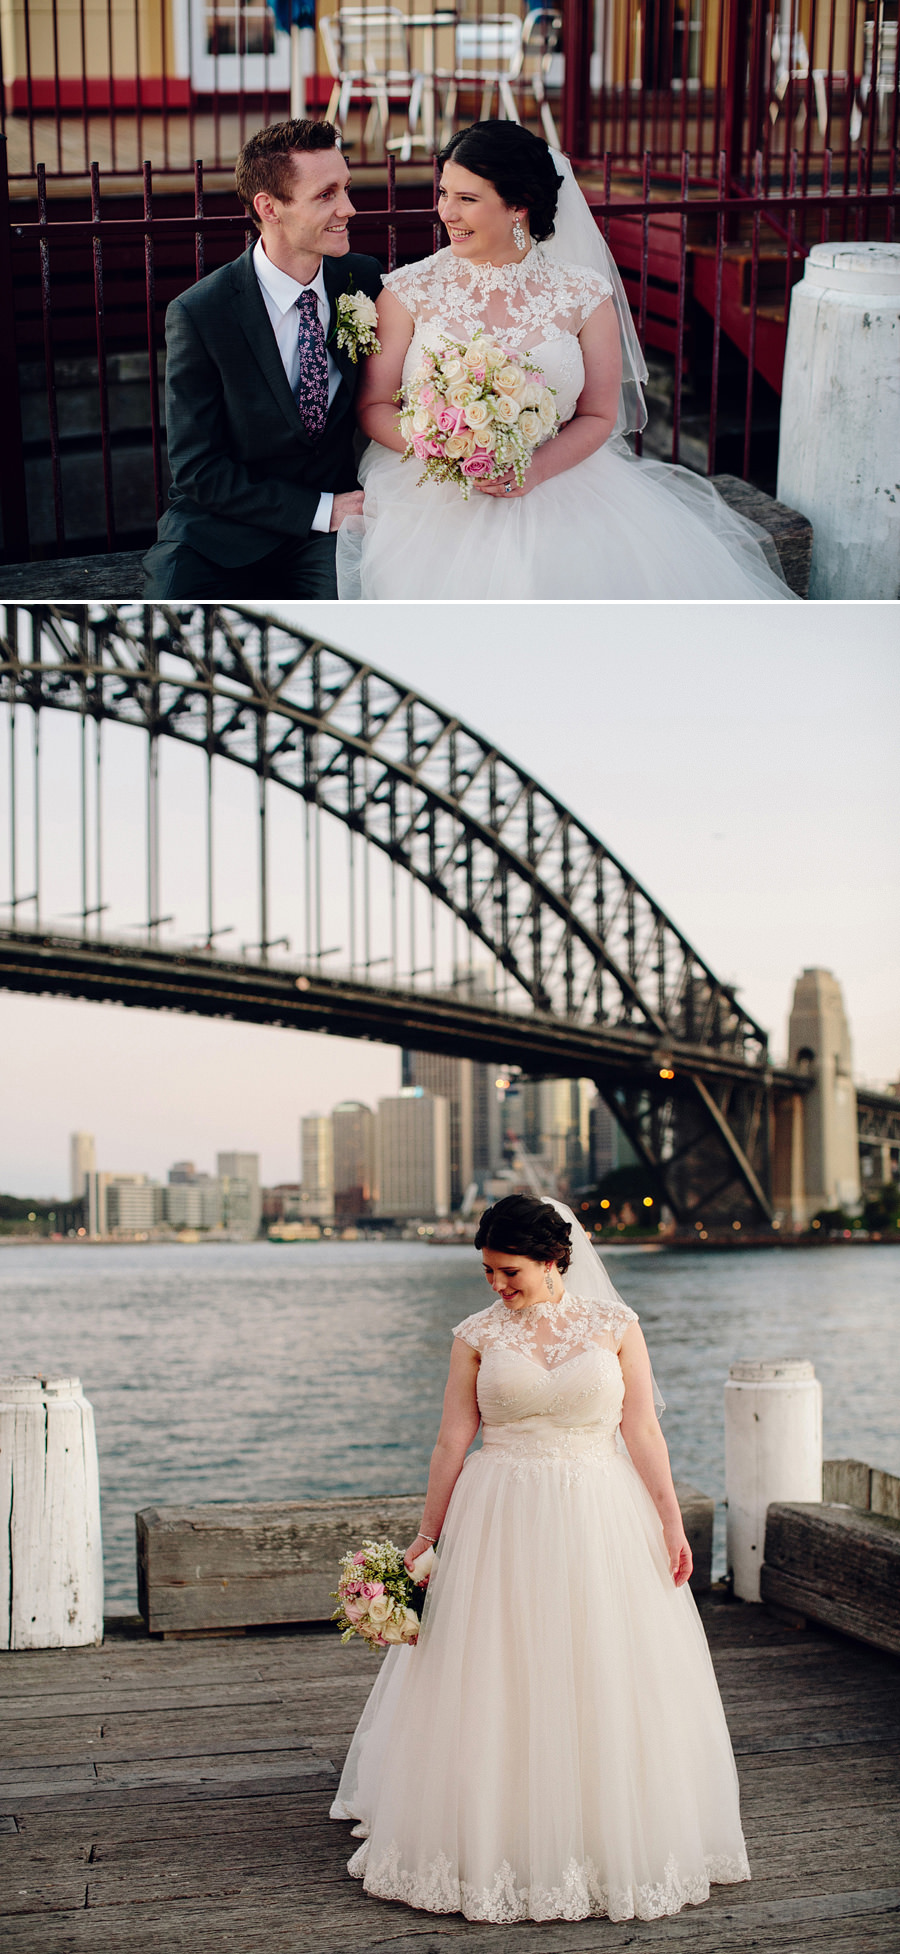 Milsons Point Wedding Photographer: Bridal party portraits